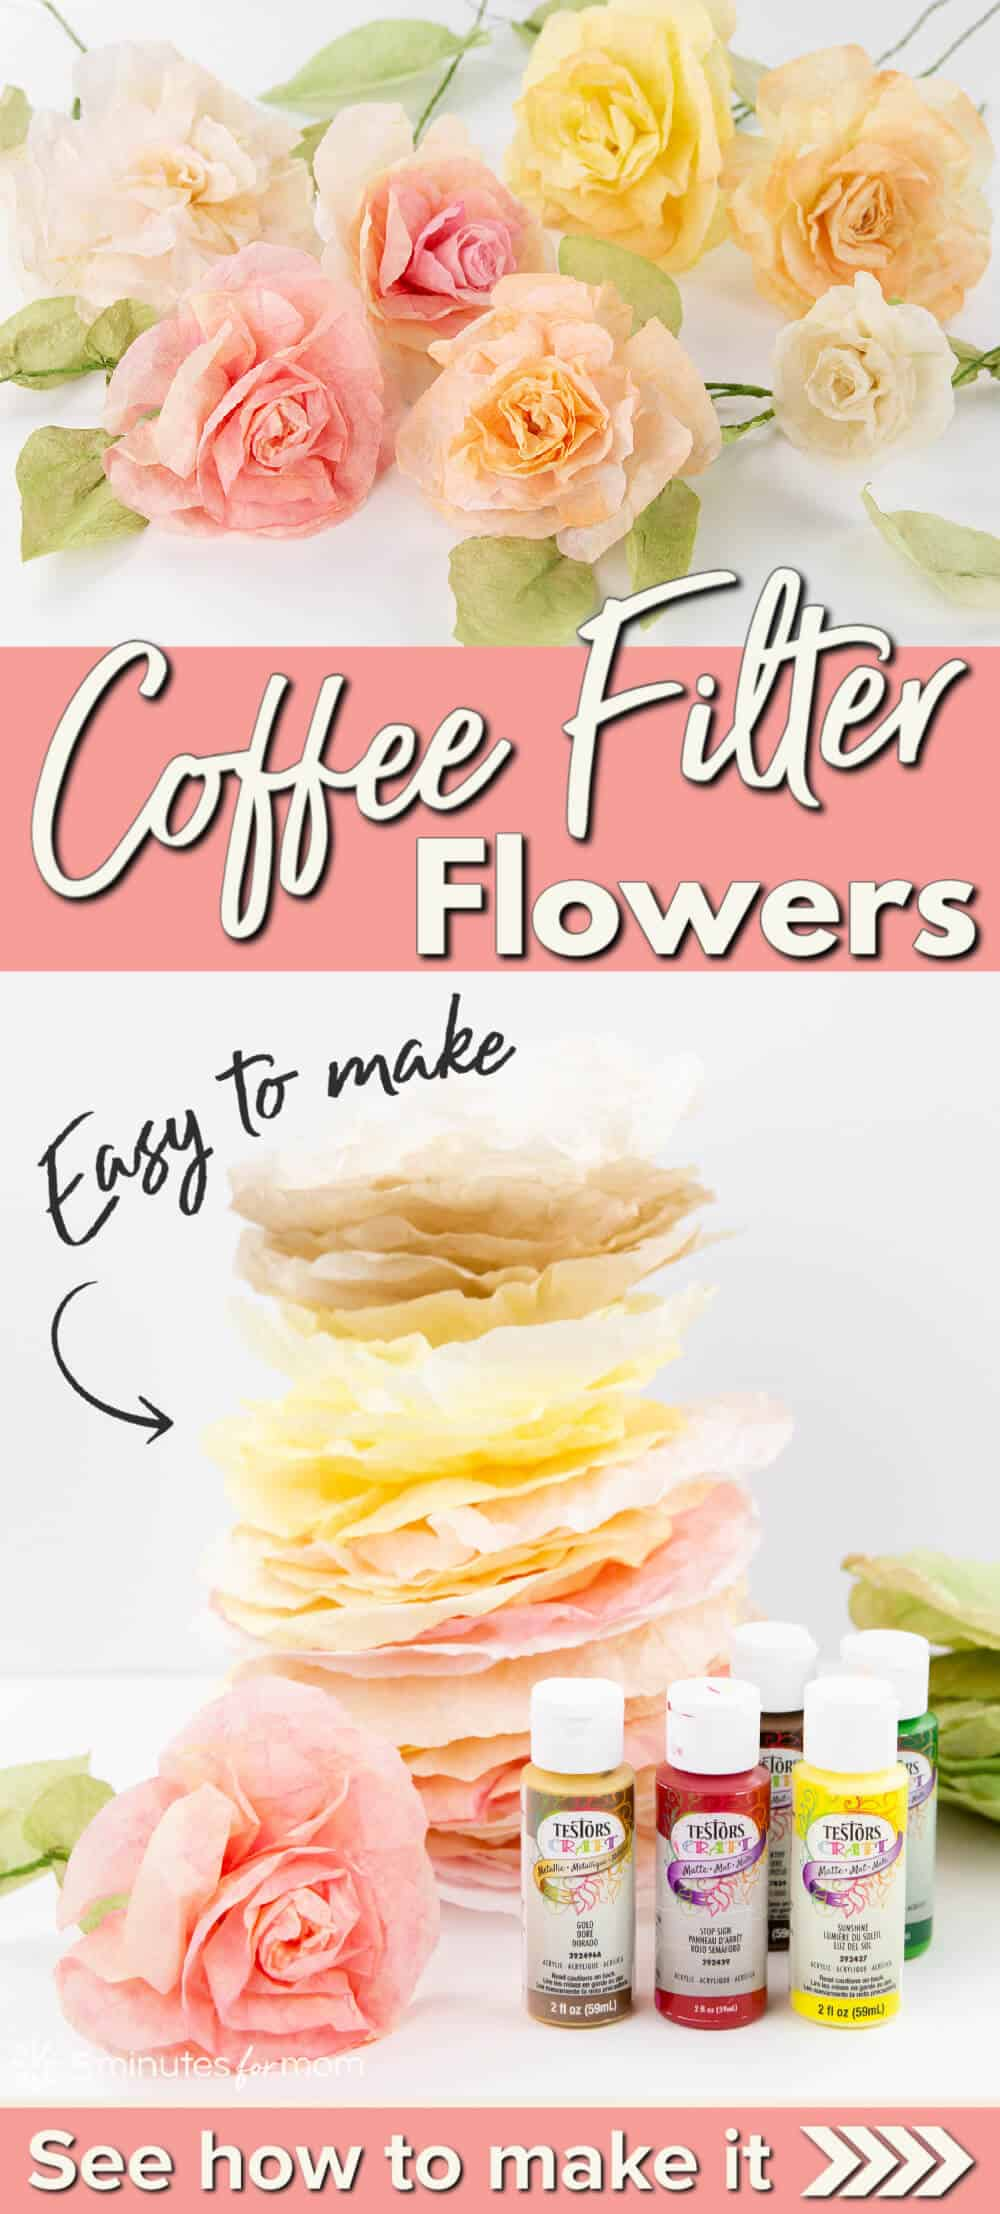 Coffee Filter Flowers - How To Make Flowers from Coffee Filters